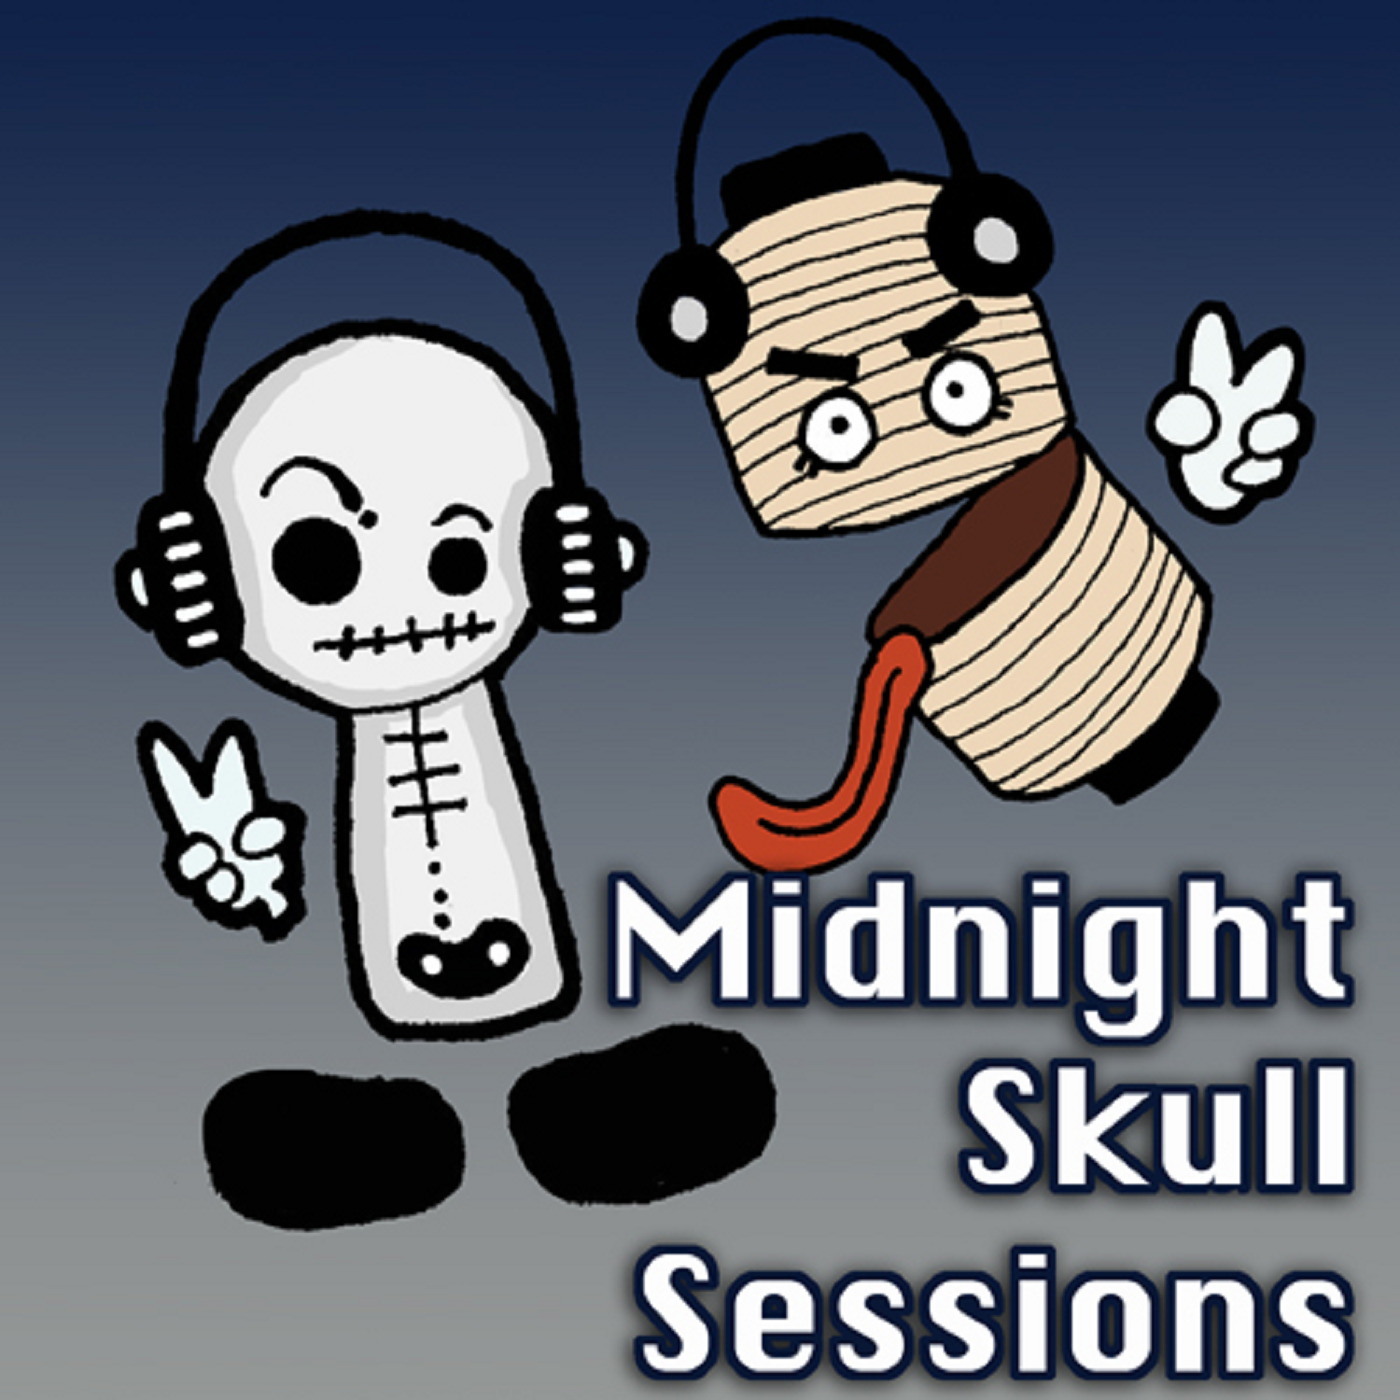 Midnight Skull Sessions - Episode 112 show art